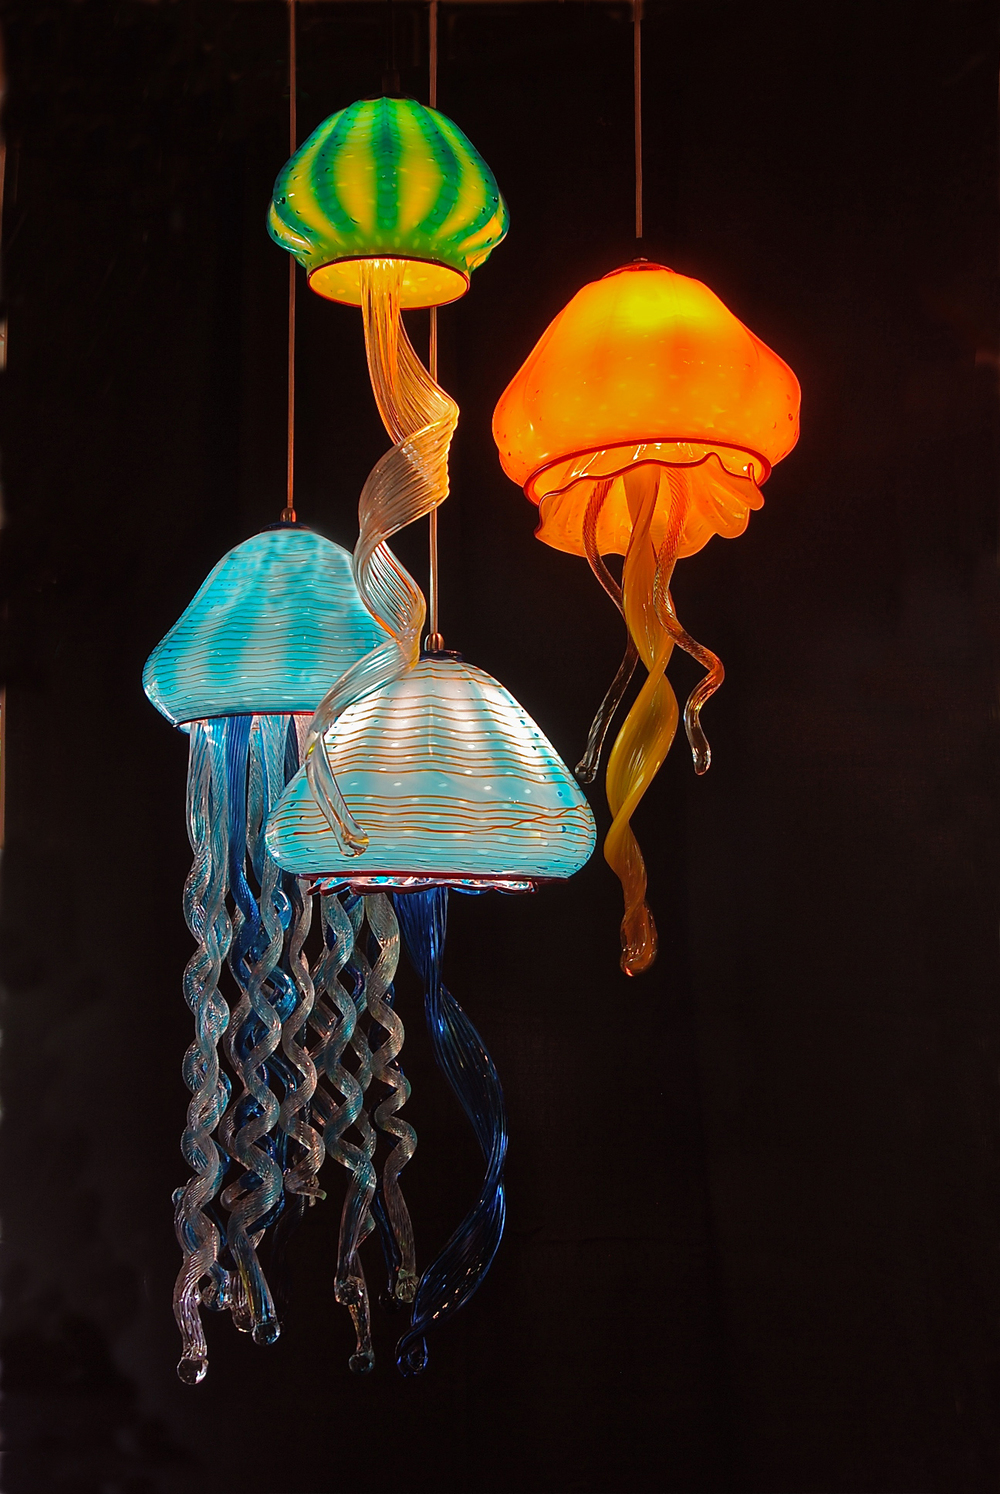 Striniartglasscustomlightingstriniartglasscustomlightinggl for Jellyfish lights